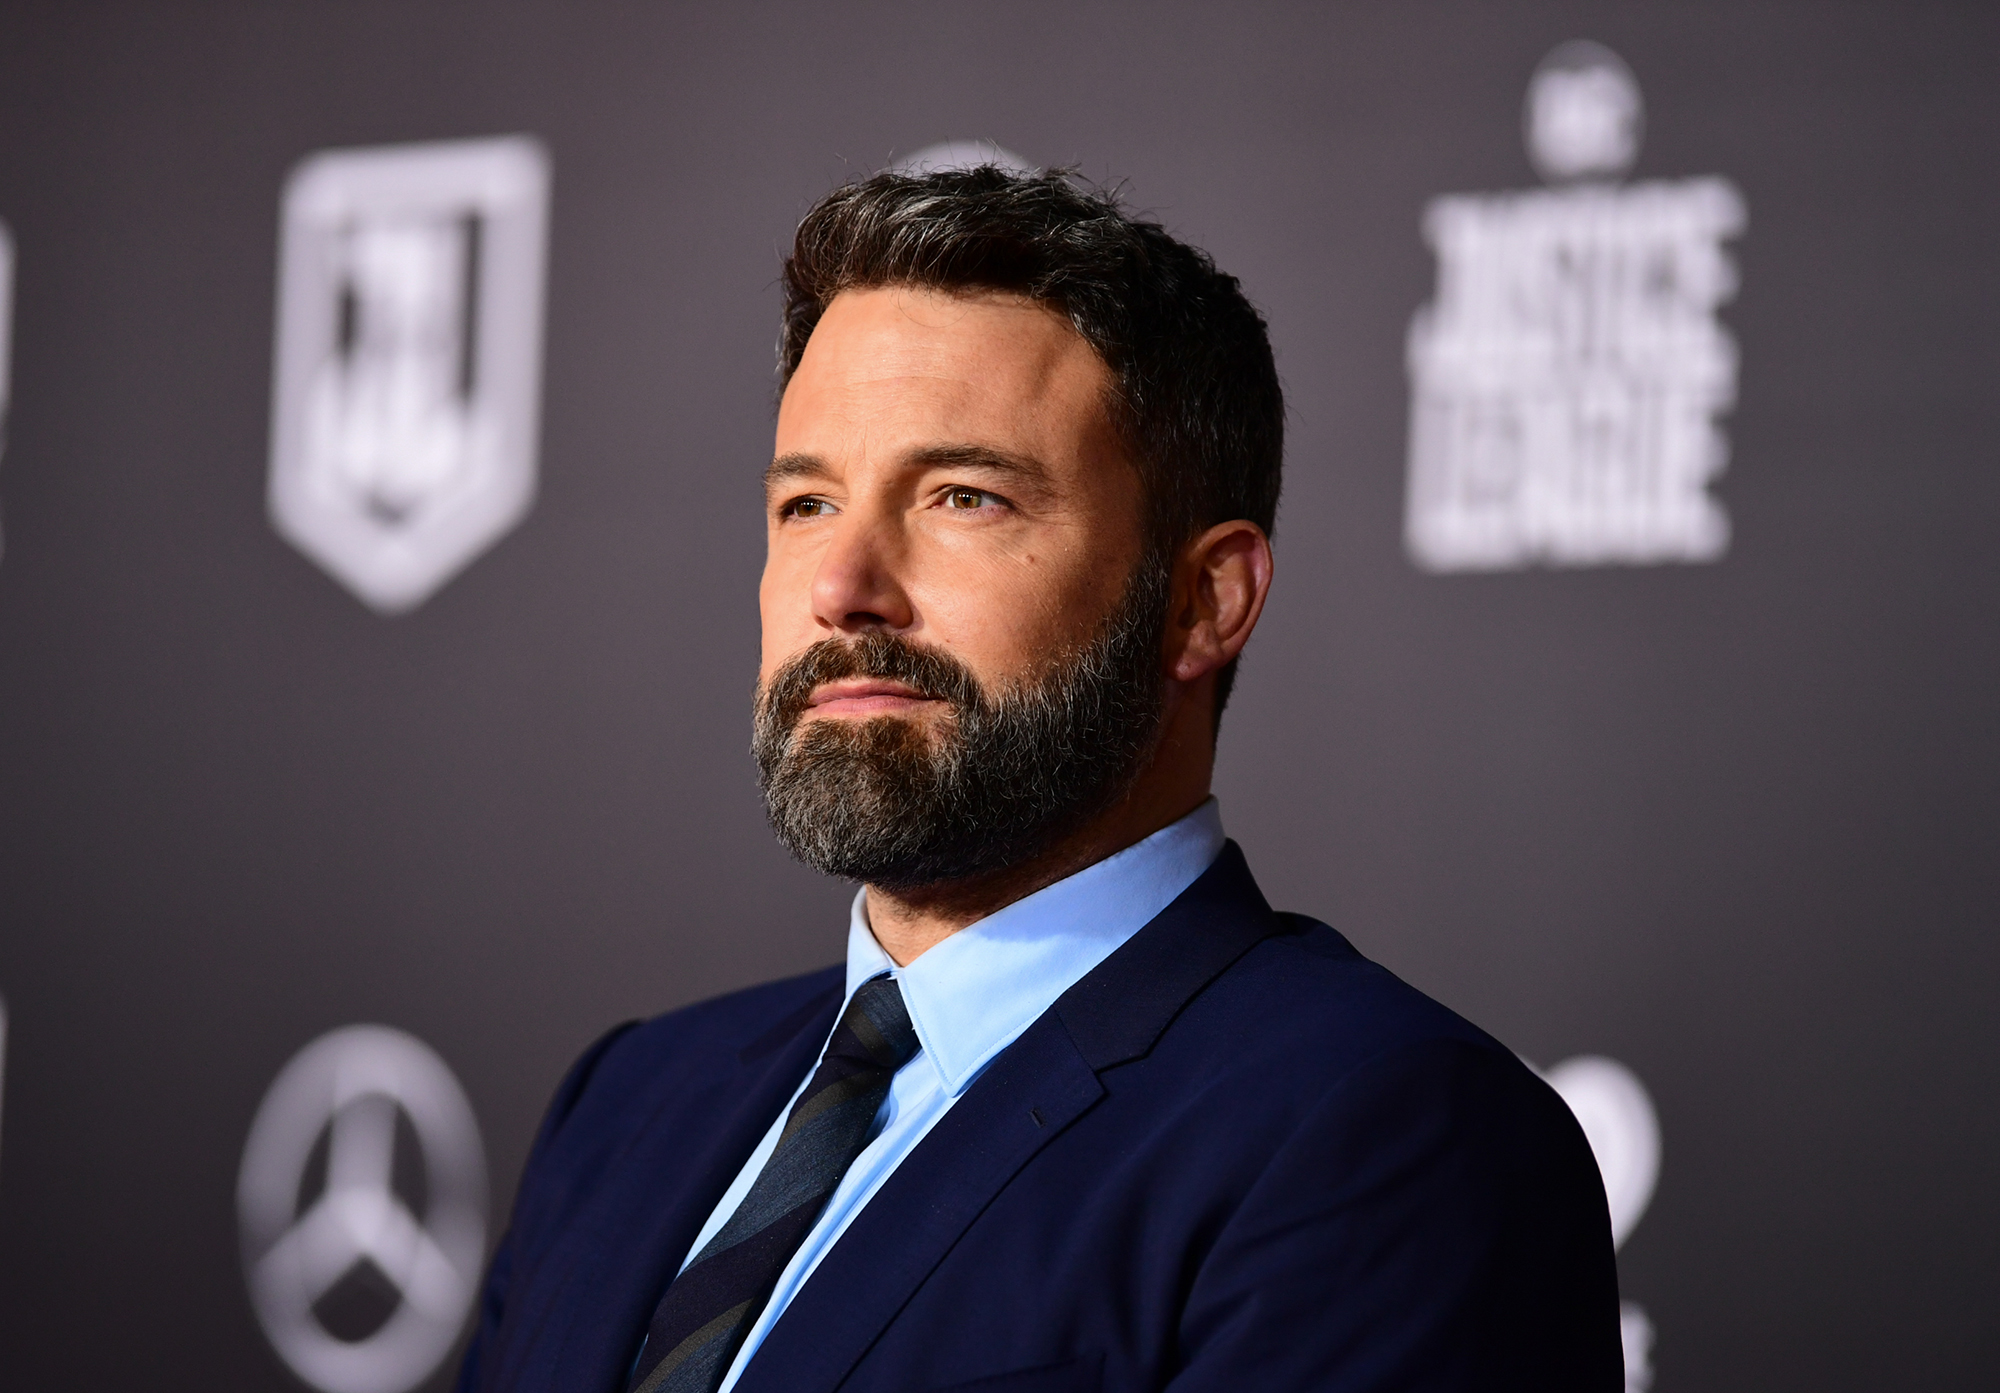 Ben Affleck Opens Up About Alcohol Addiction in Statement | Time